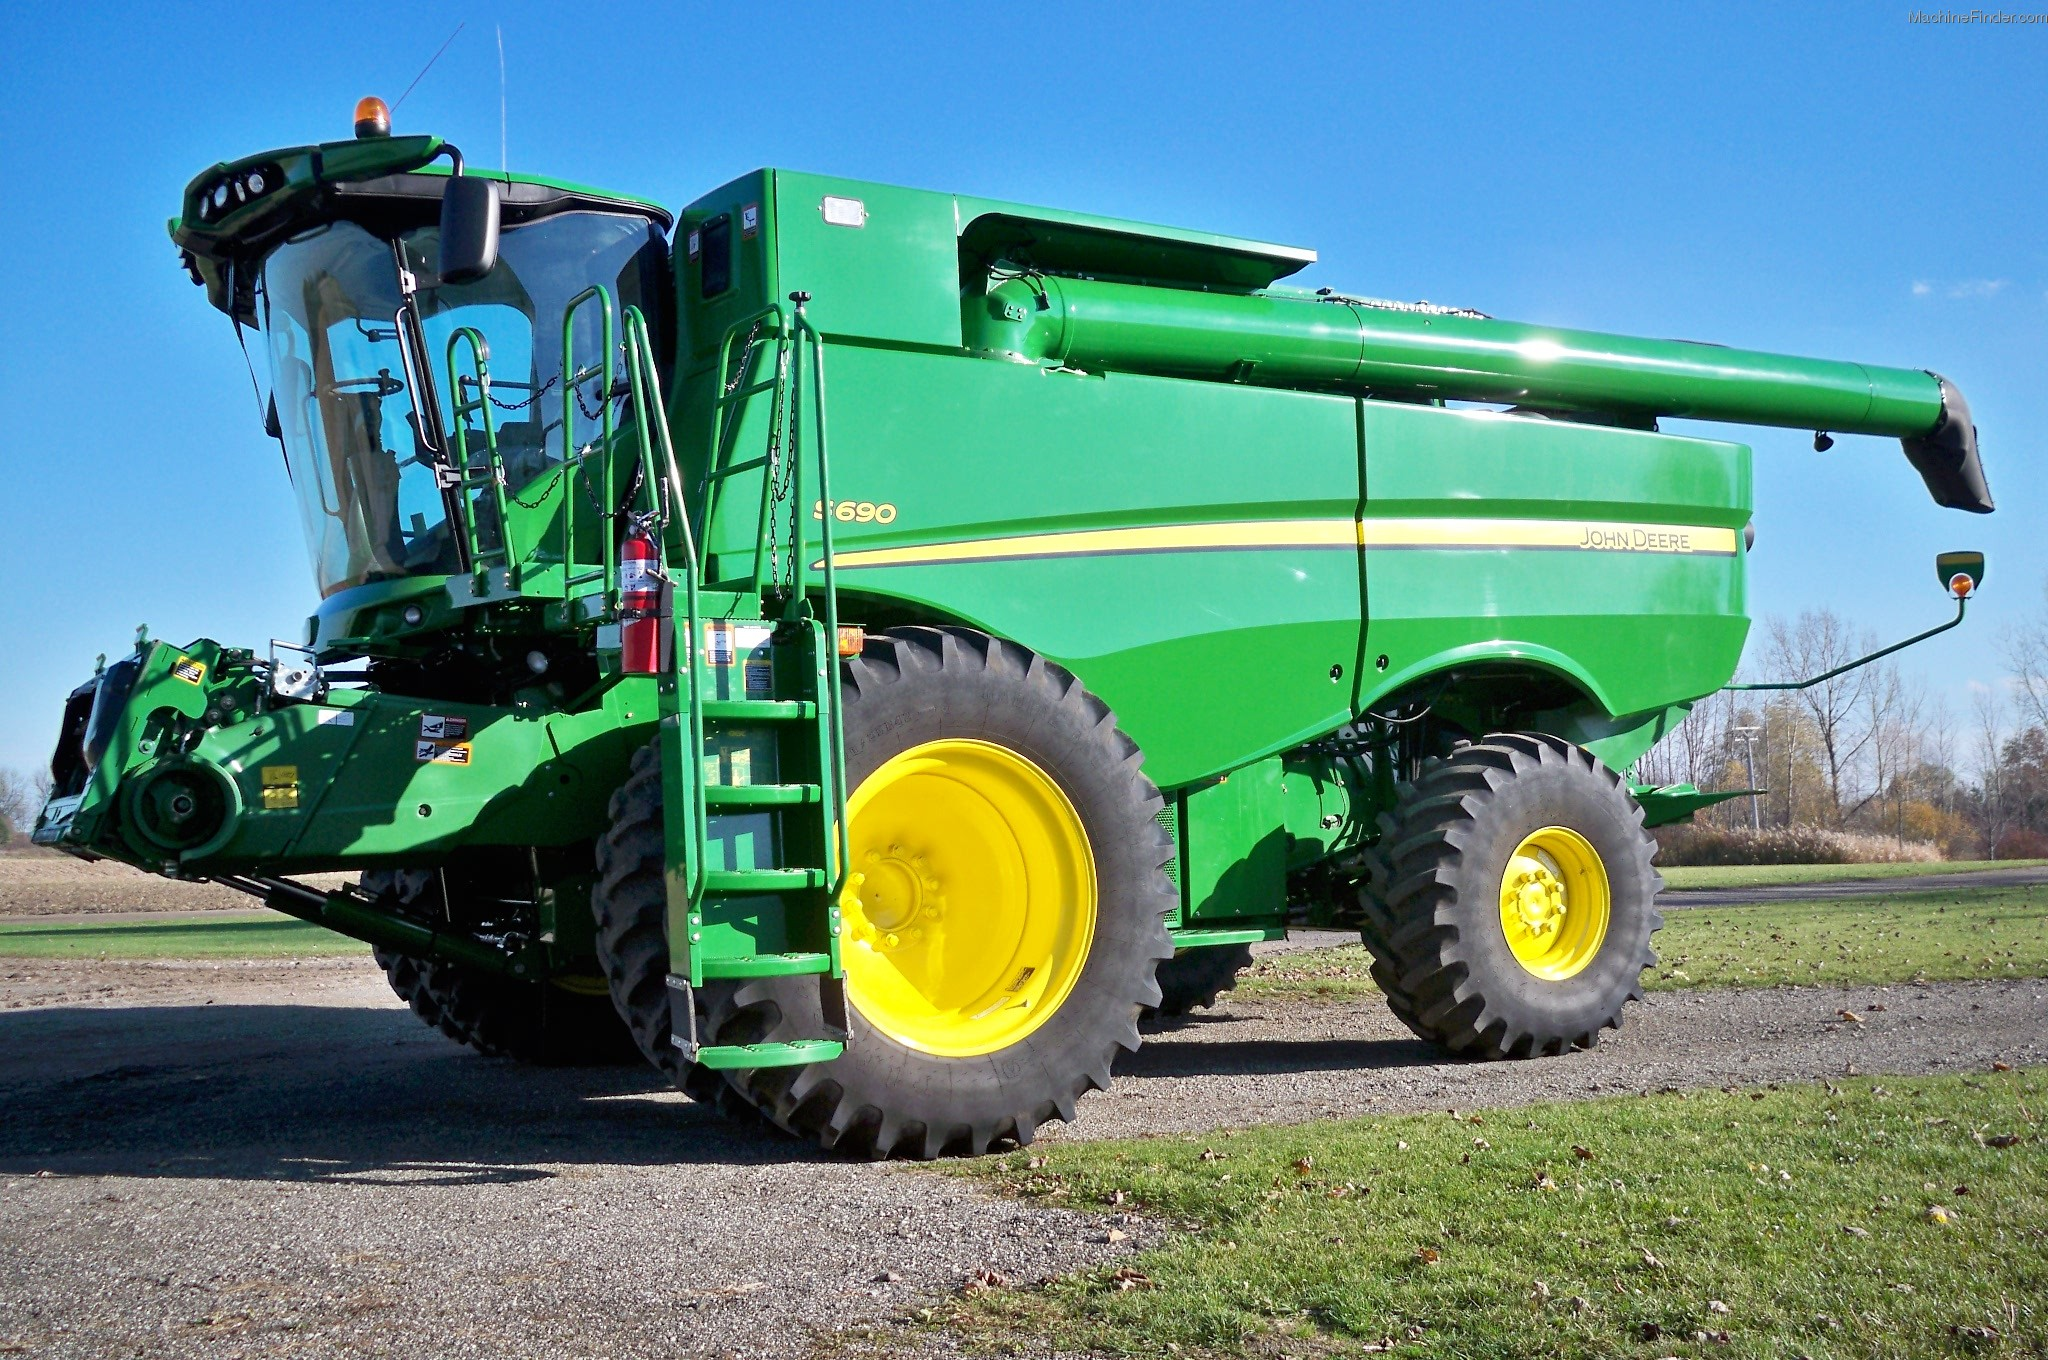 2012 John Deere S690 Combine http://www.machinefinder.com/ww/en-US/machine/2322772